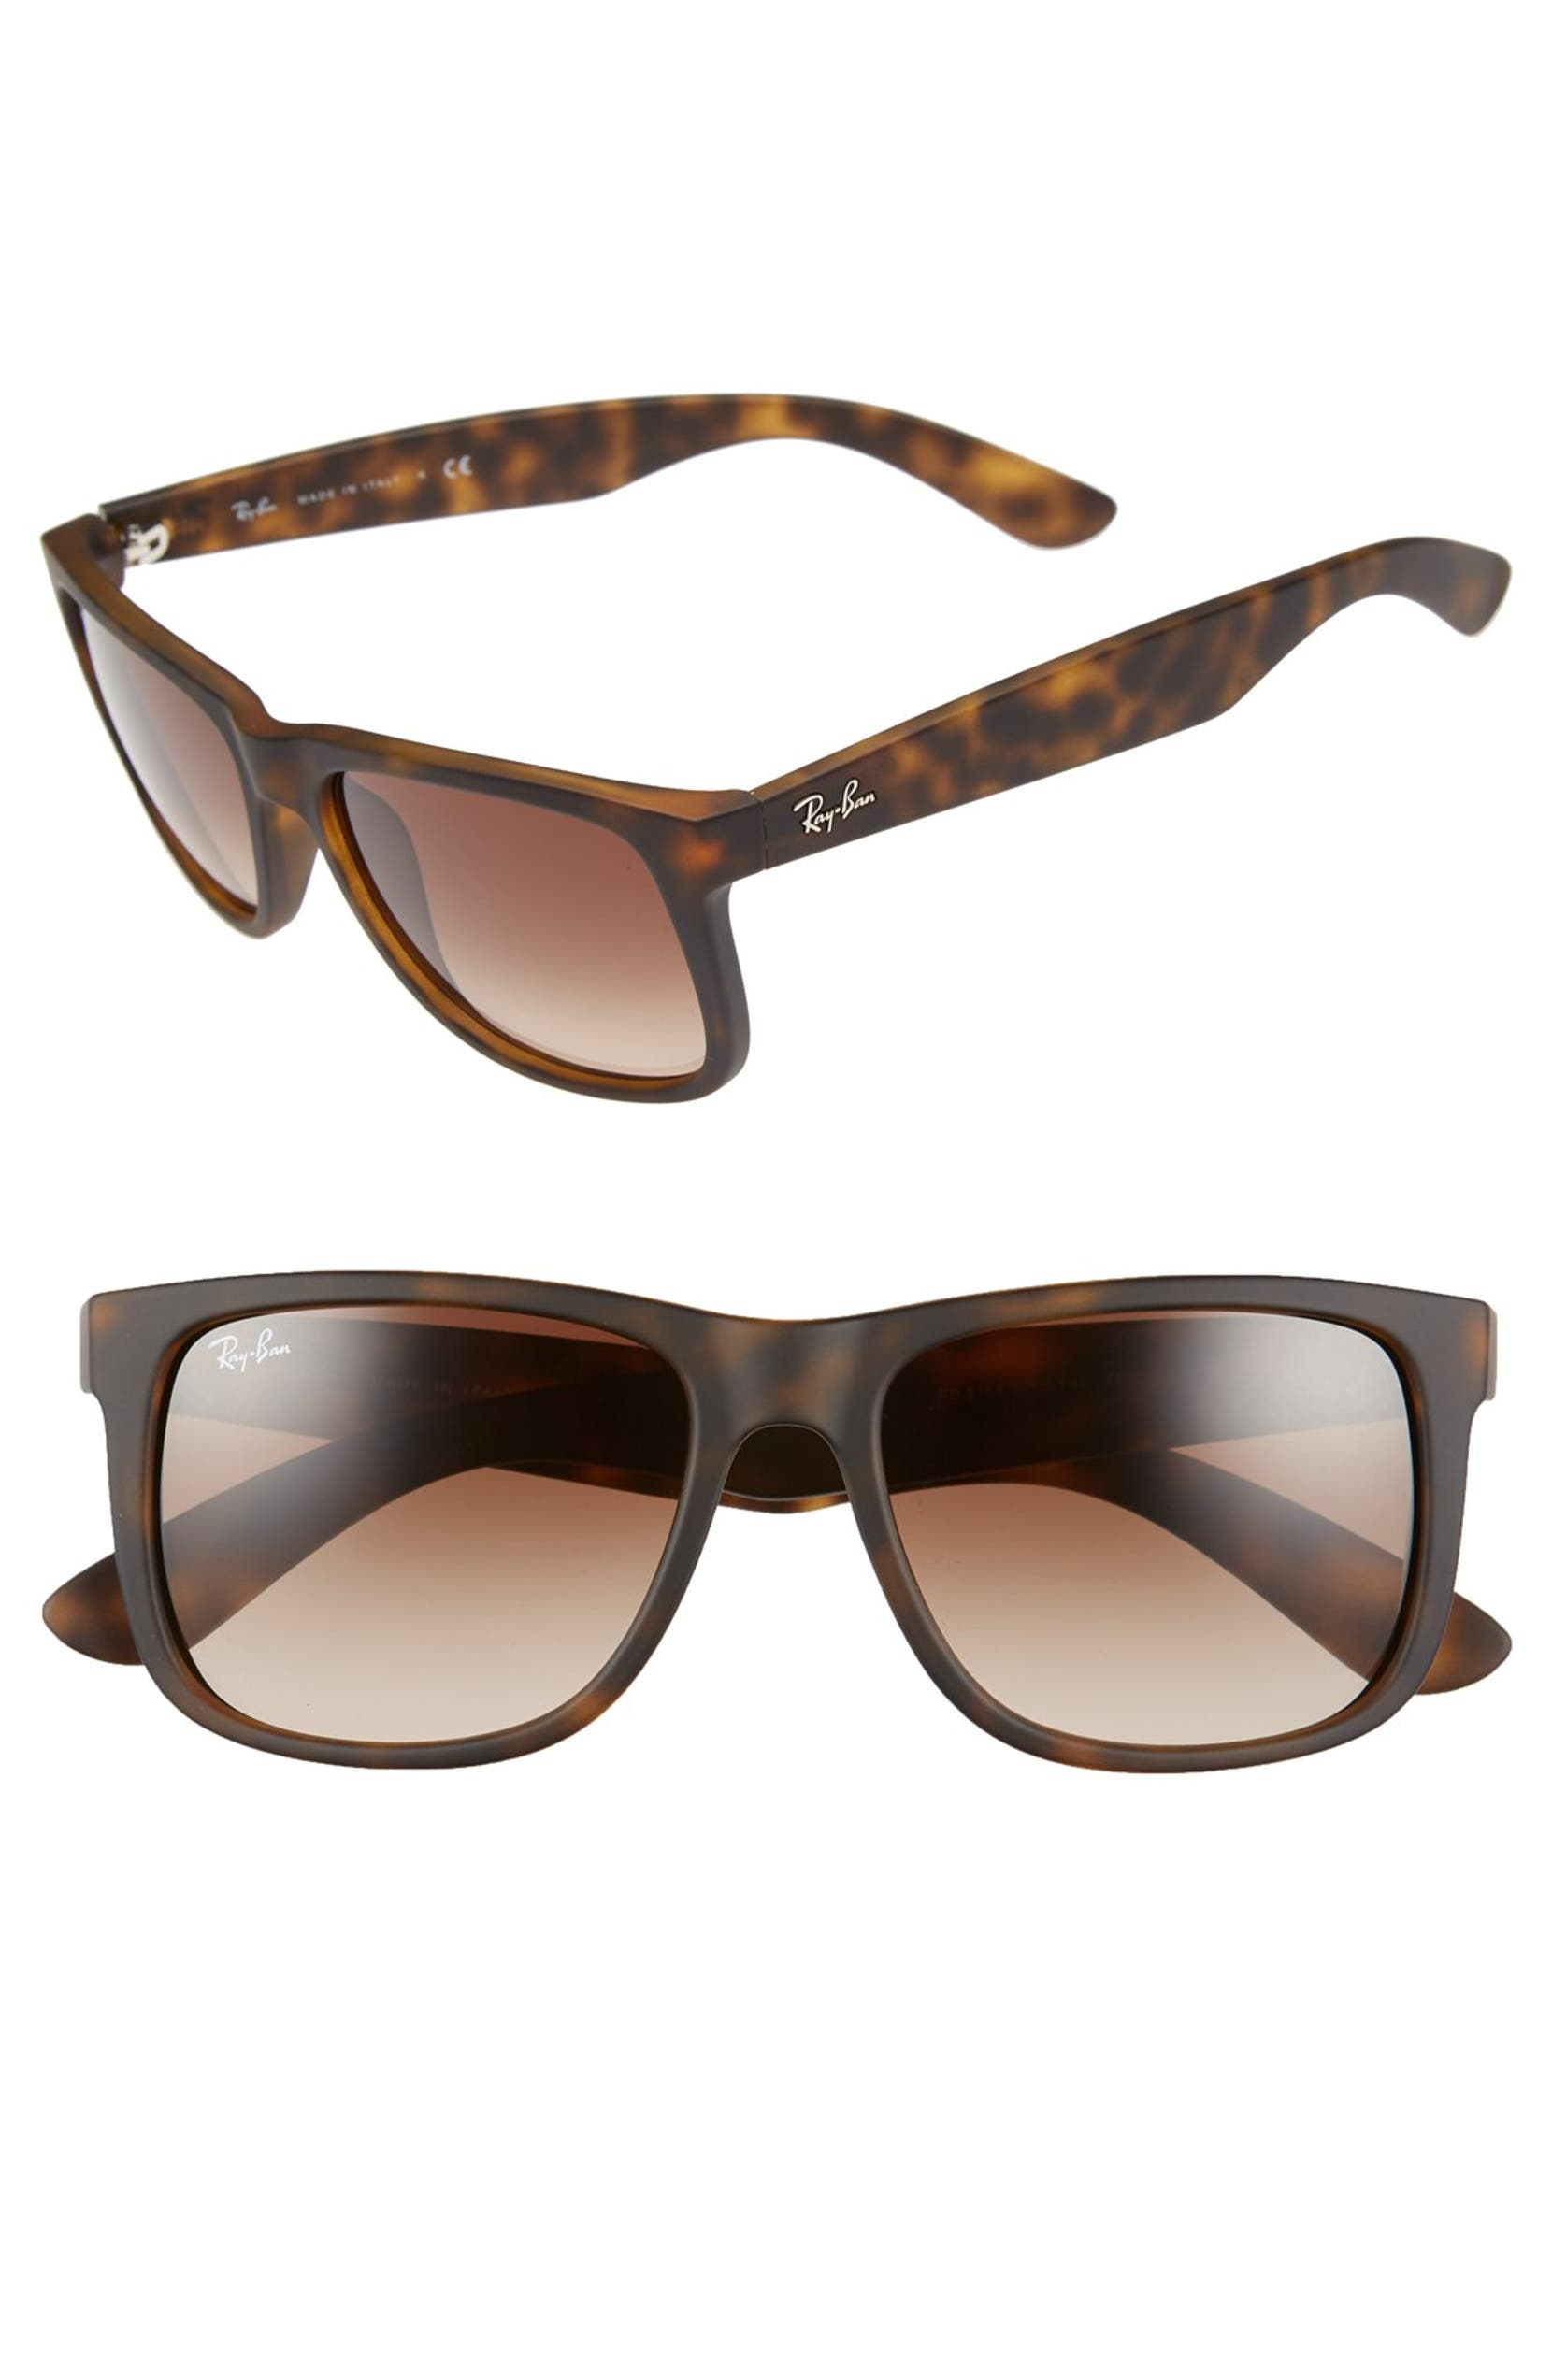 Ray-Ban  Justin Classic  54mm Sunglasses   Nordstrom 5bccc293f1